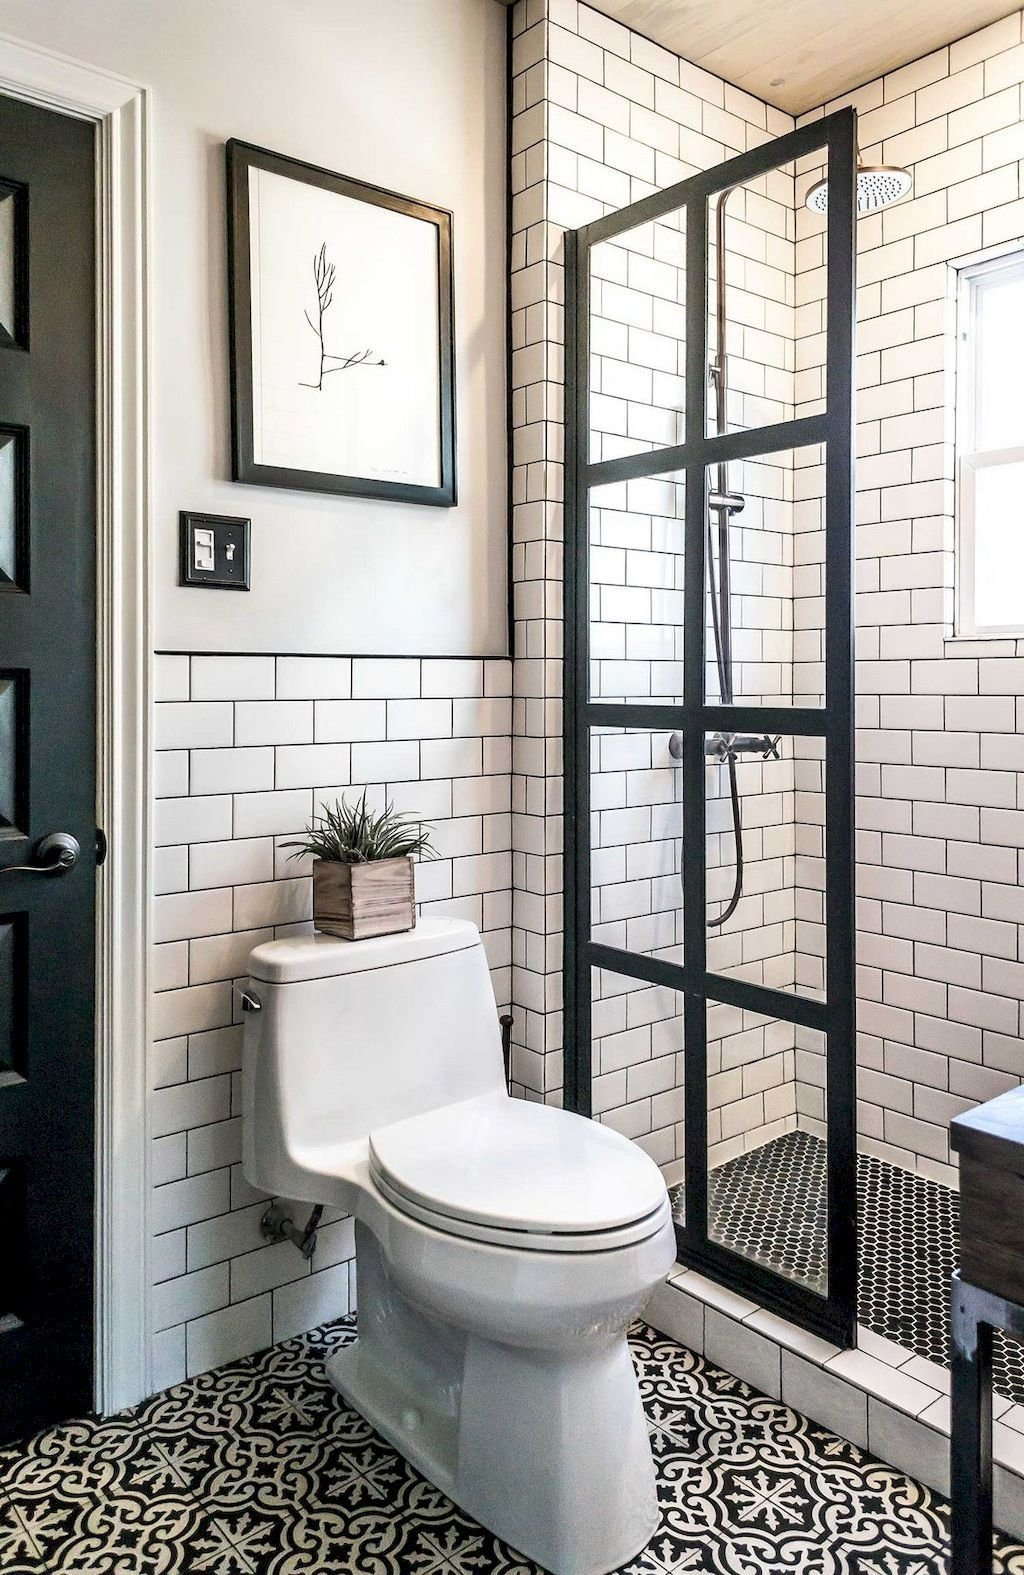 10 Unique Ideas For Small Bathroom Remodel cool small master bathroom remodel ideas 1 master bathroom 2020